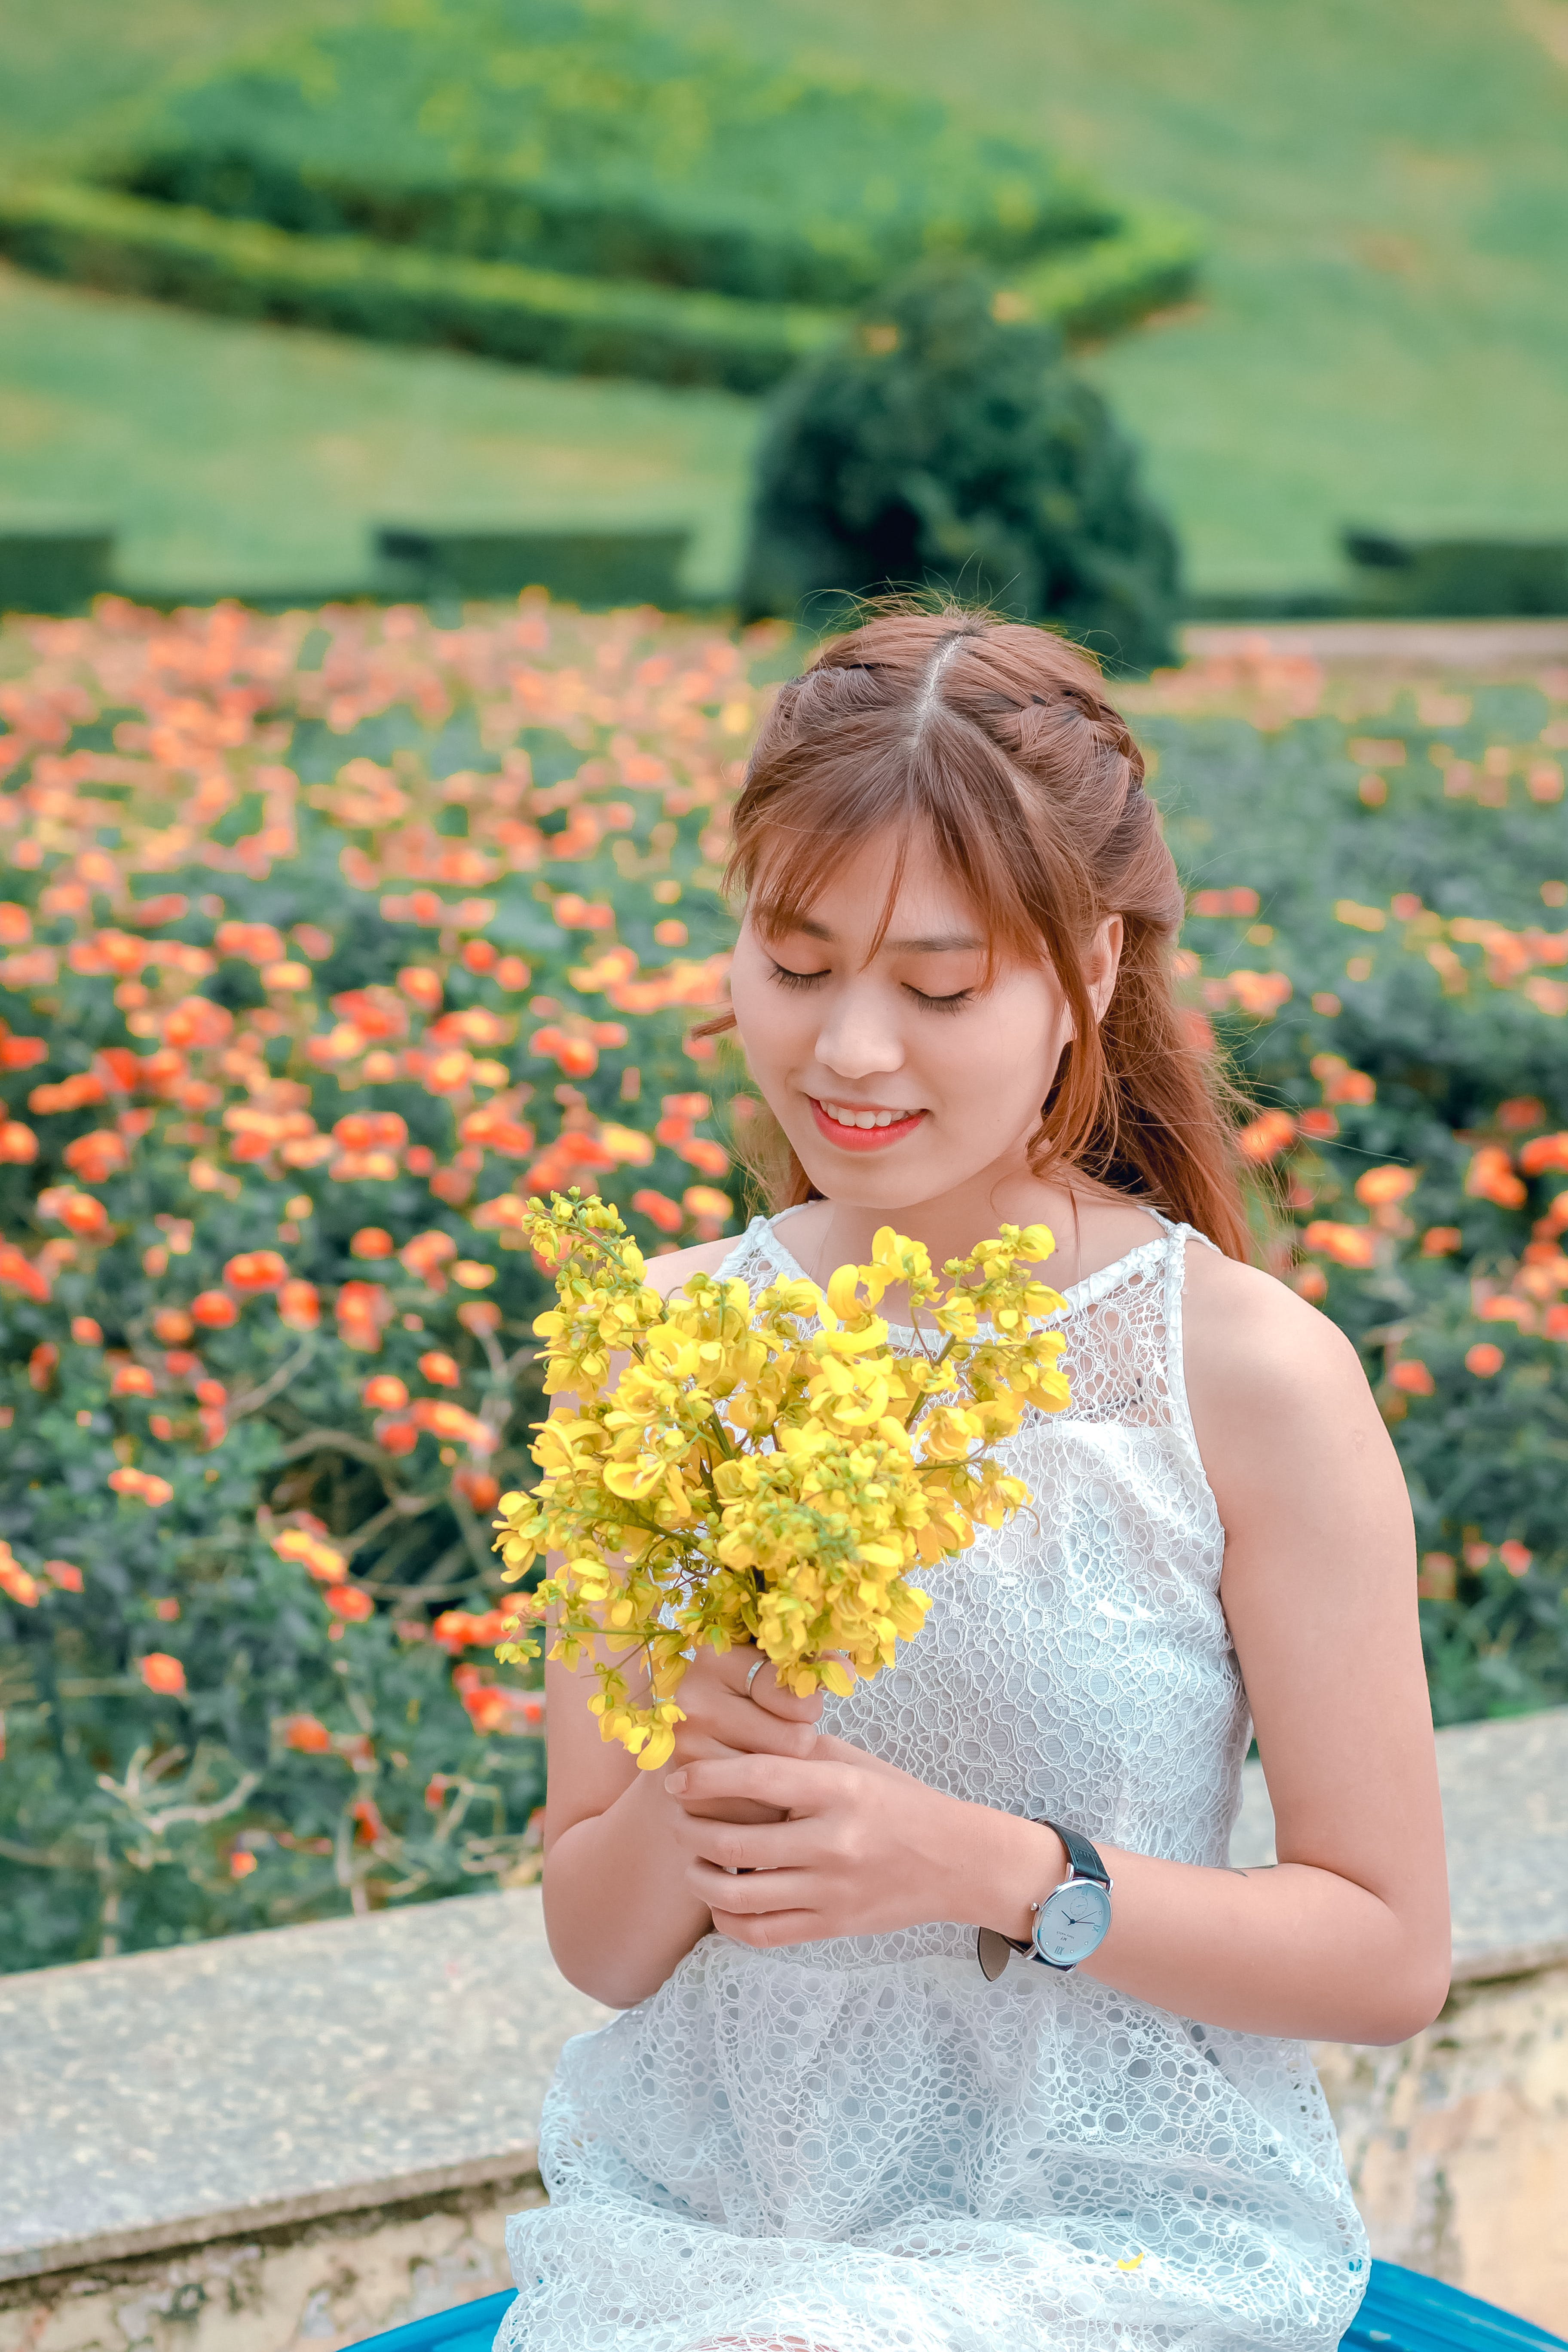 Woman Wearing White Top Holding Yellow Petaled Flowers